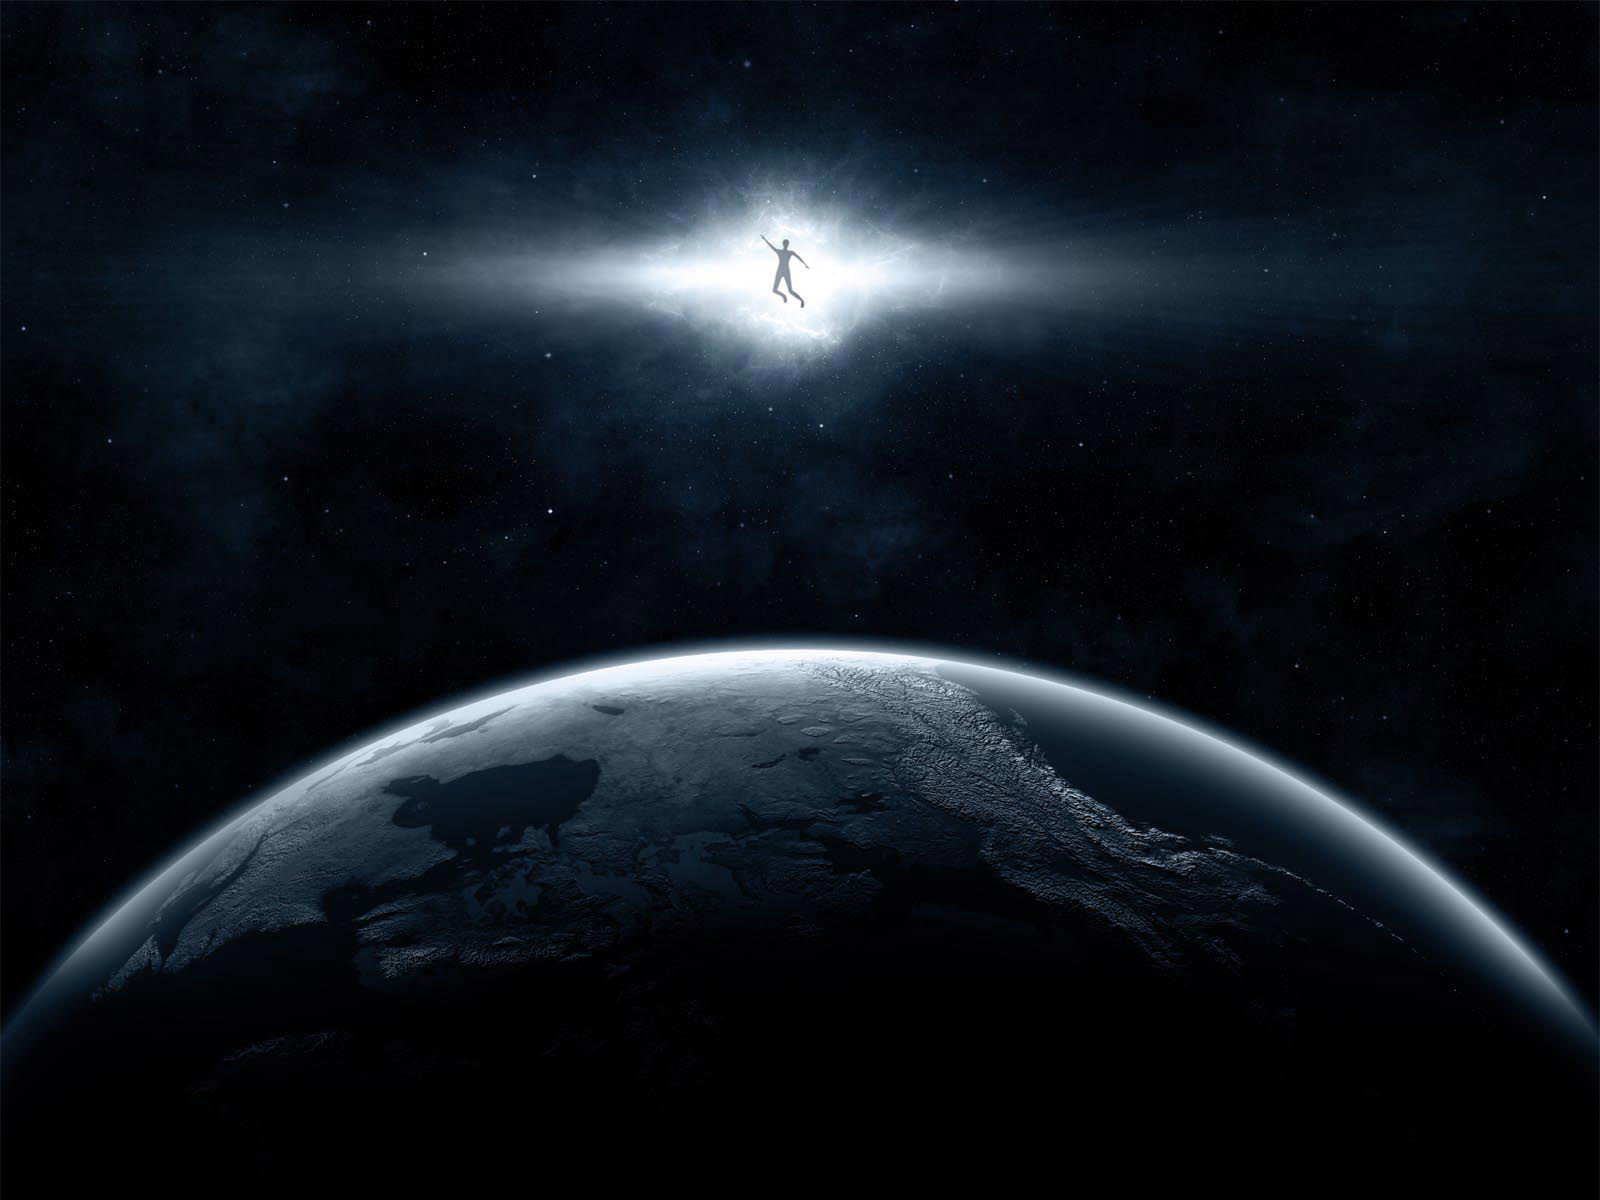 Universe Artistic Wallpapers HD 1600x Photo 20 of 54 1600x1200